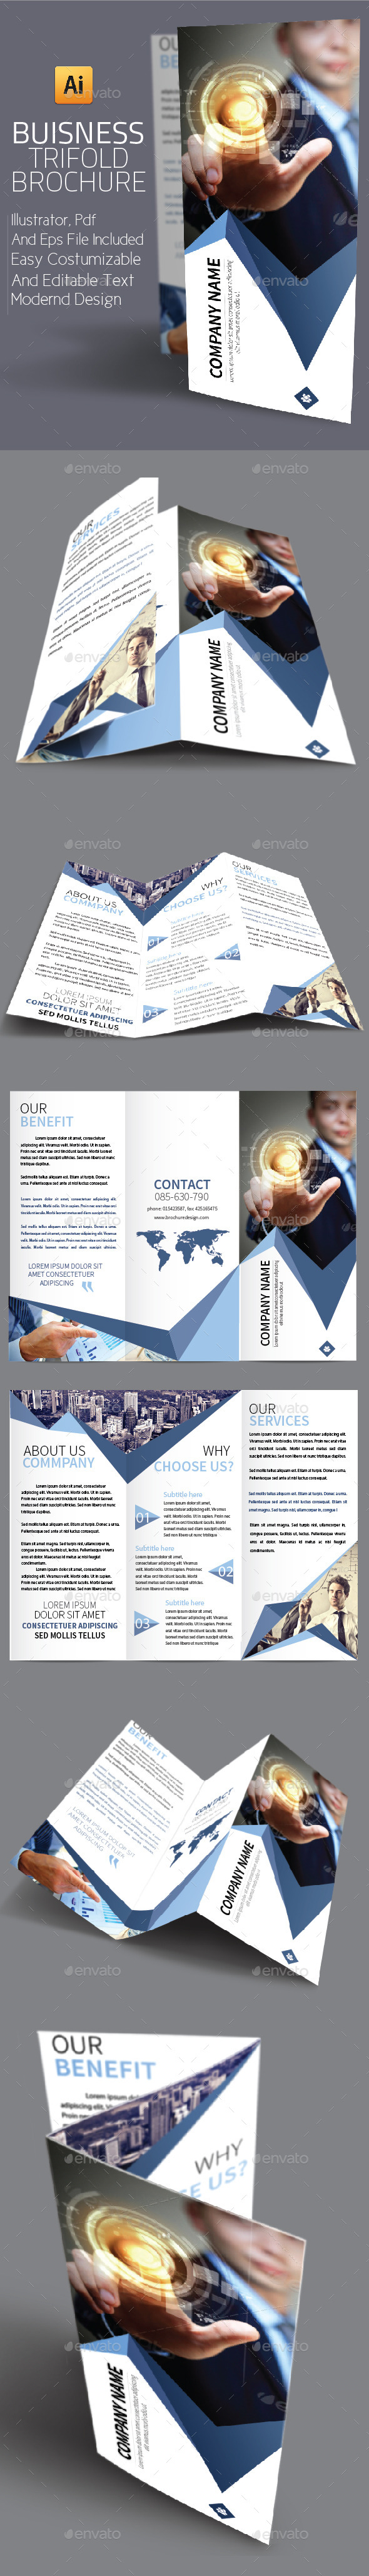 GraphicRiver Business Trifold Brochure 9817332